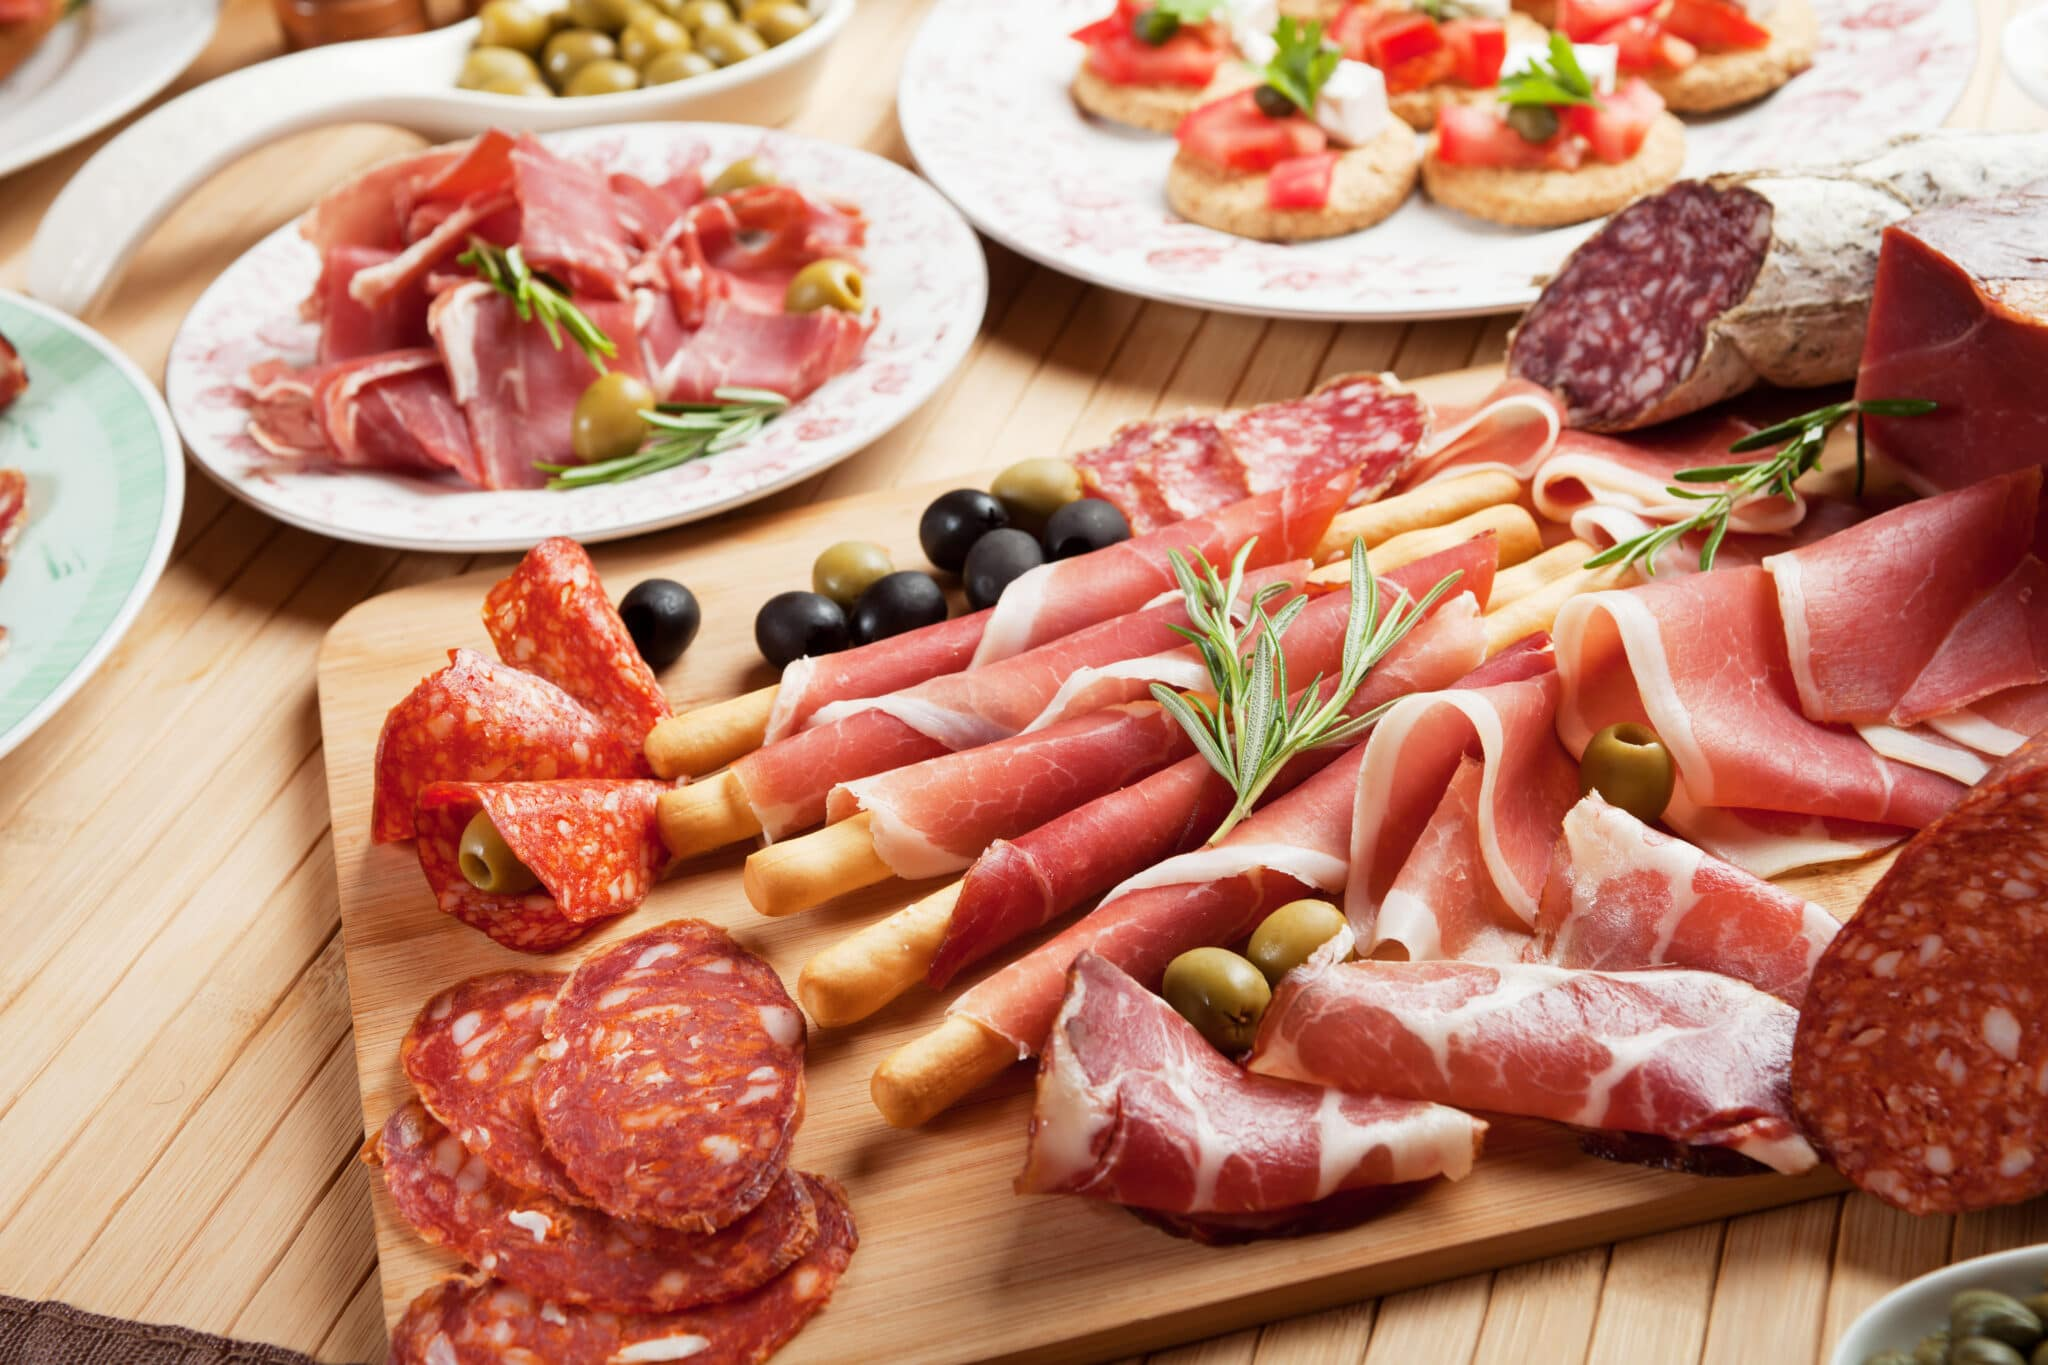 Multistate Salmonella Outbreak Linked to Antipasto Meats